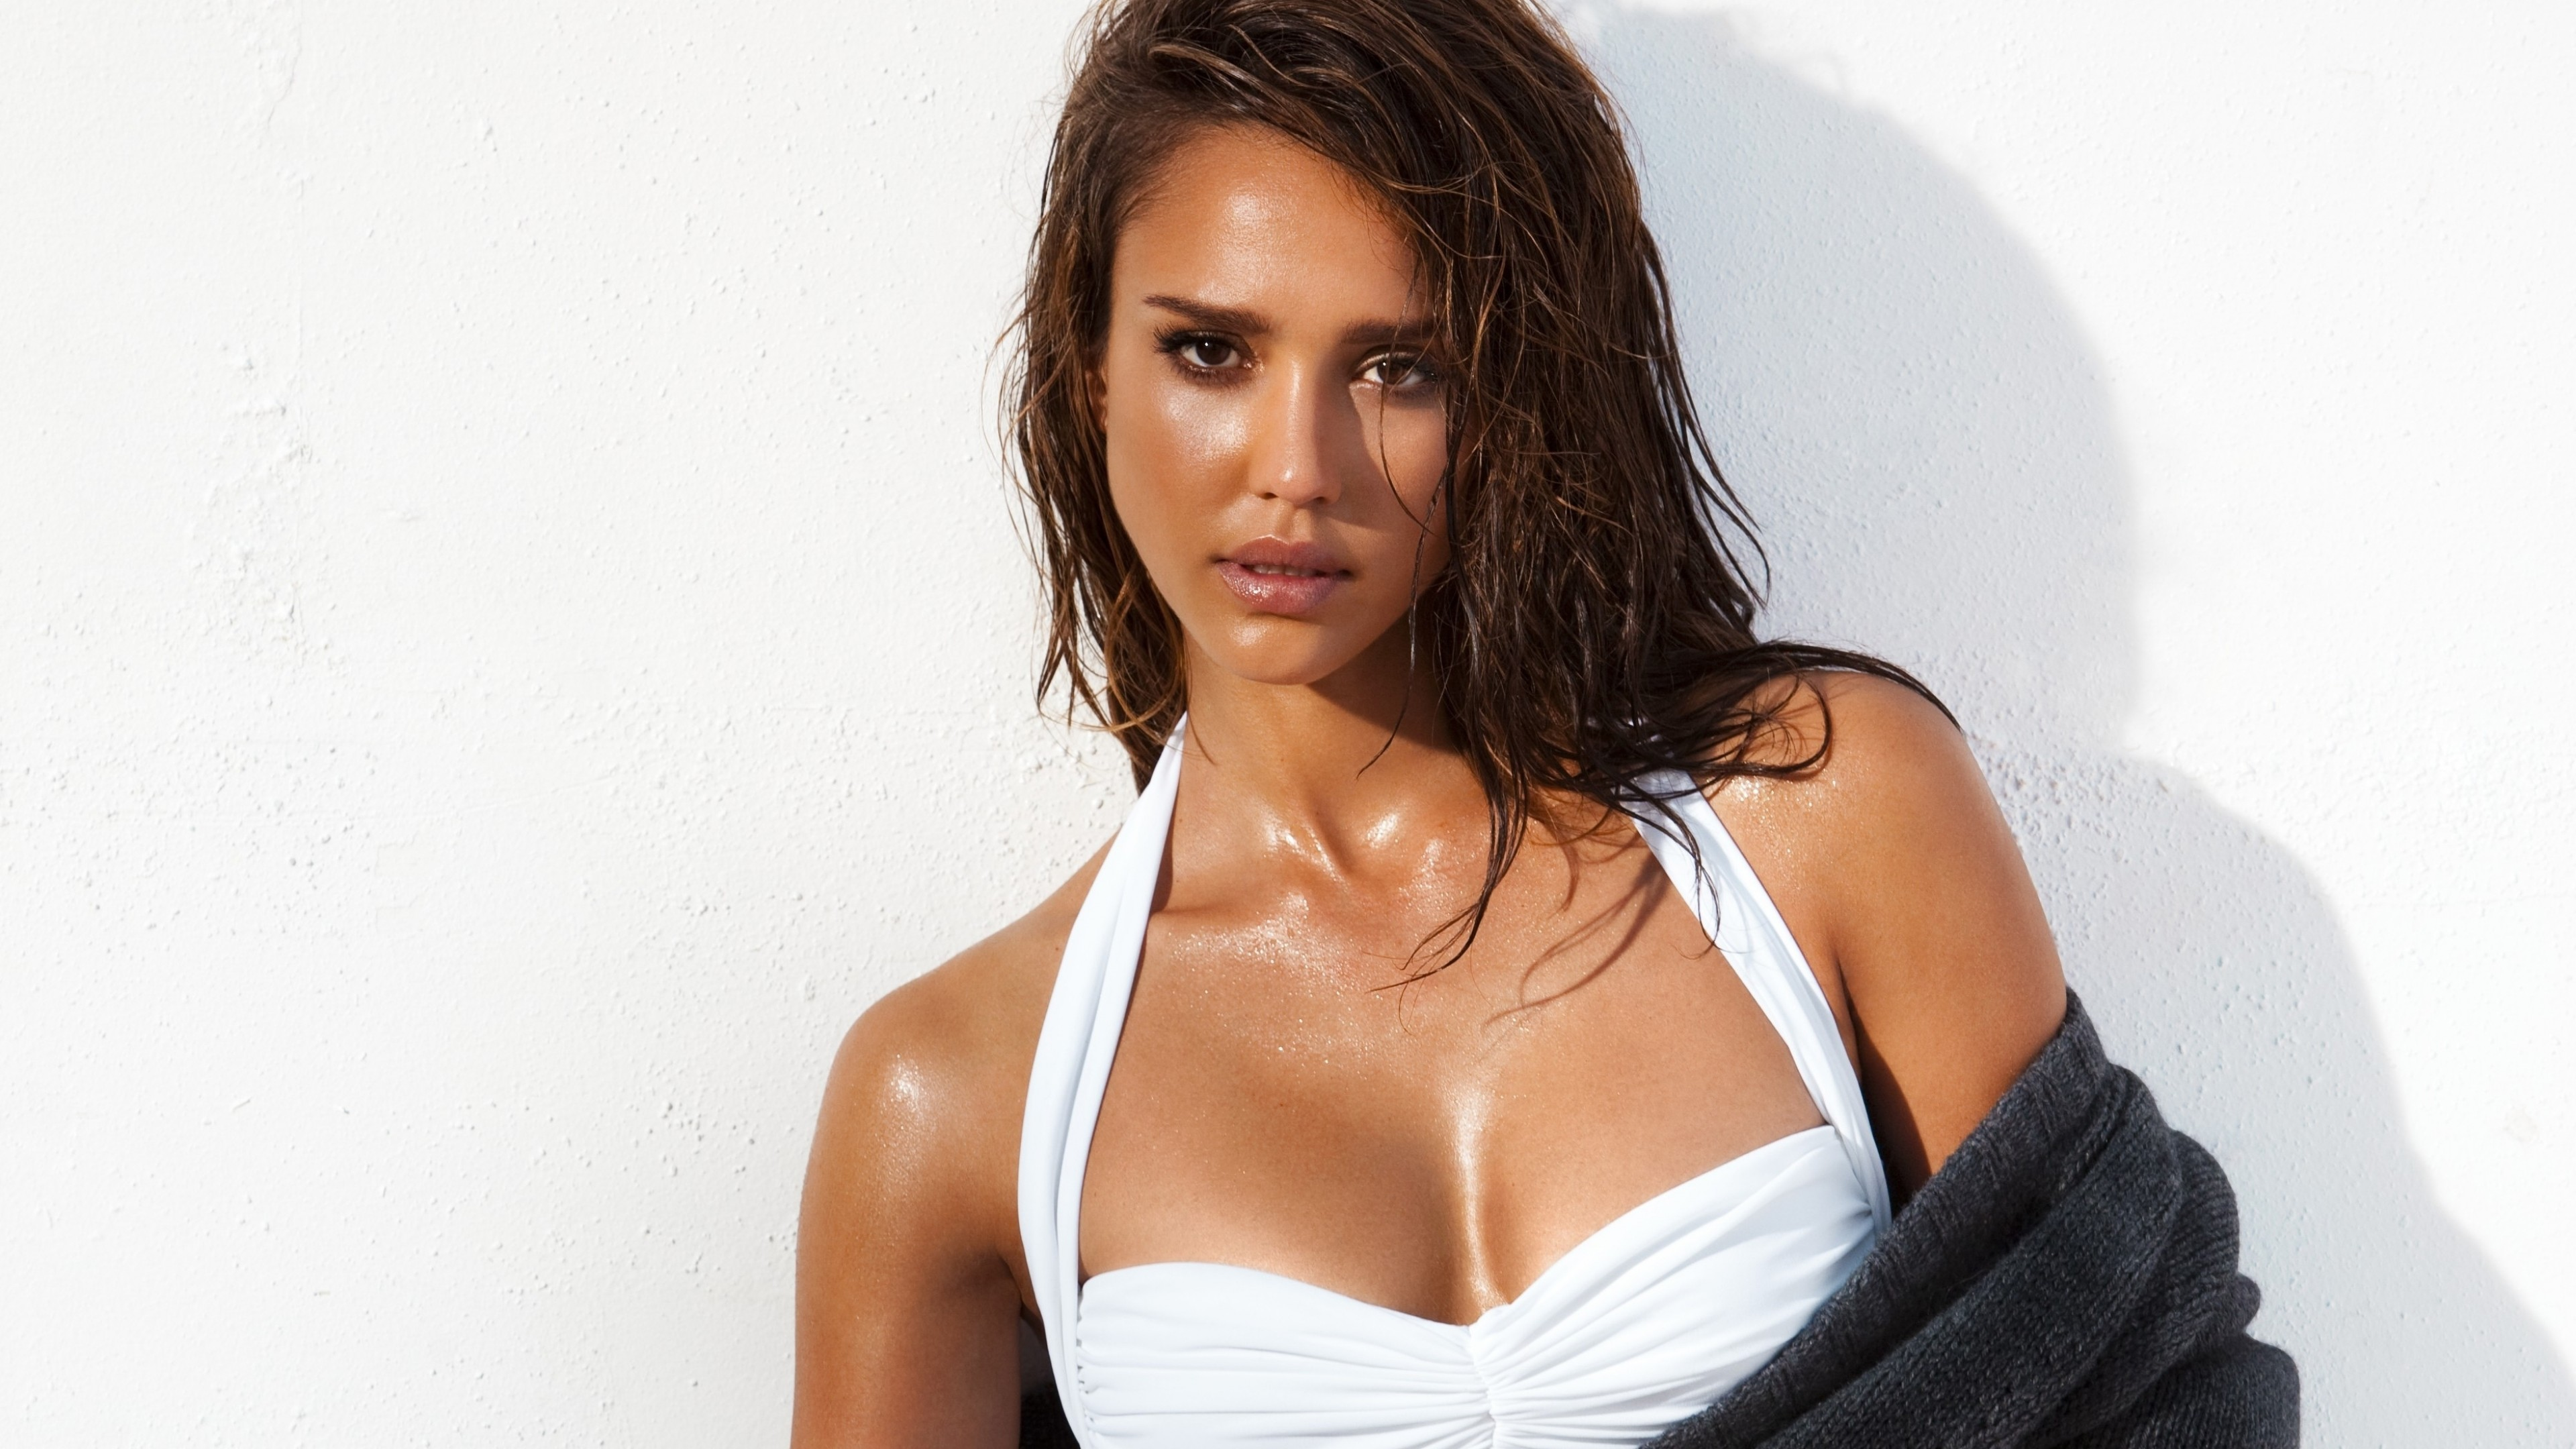 https://i1.wp.com/hdqwalls.com/wallpapers/jessica-alba-gq-2016-po.jpg